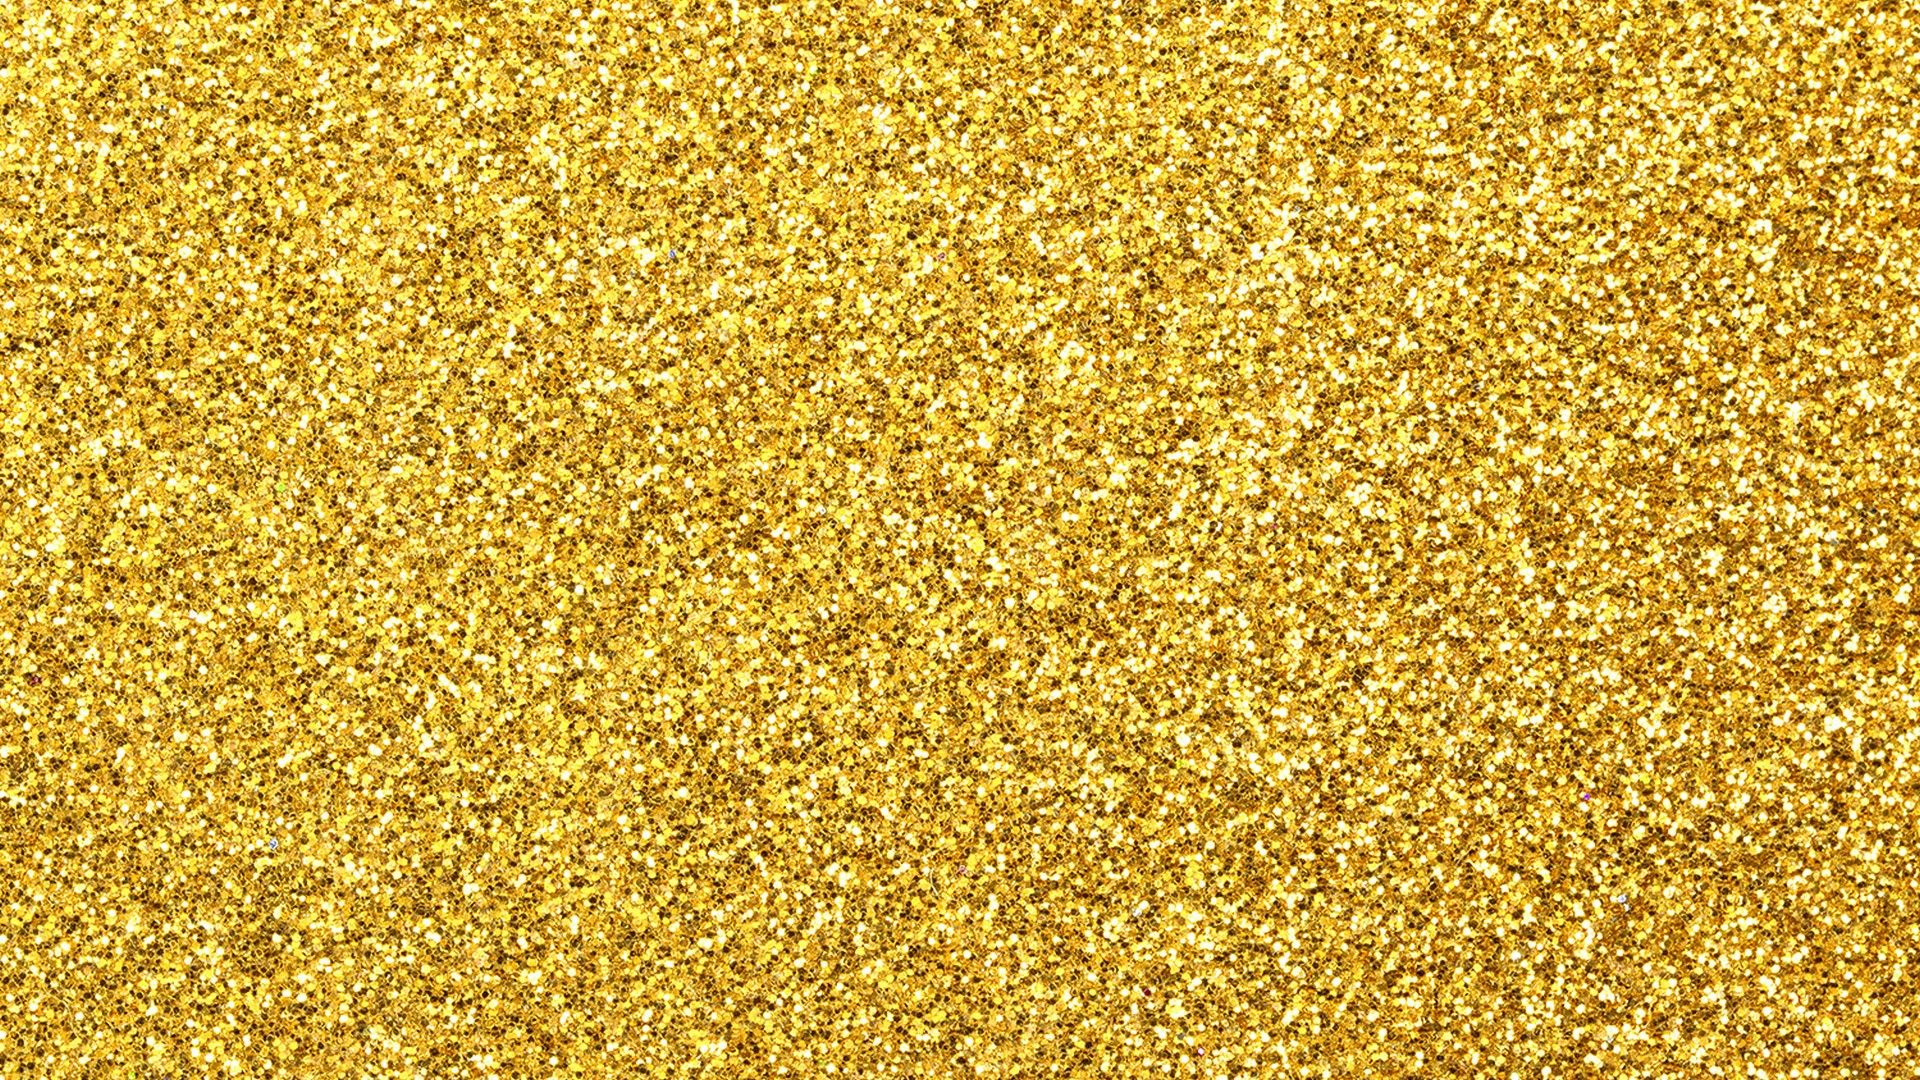 HD Wallpaper Gold Glitter 2020 Live Wallpaper HD Gold